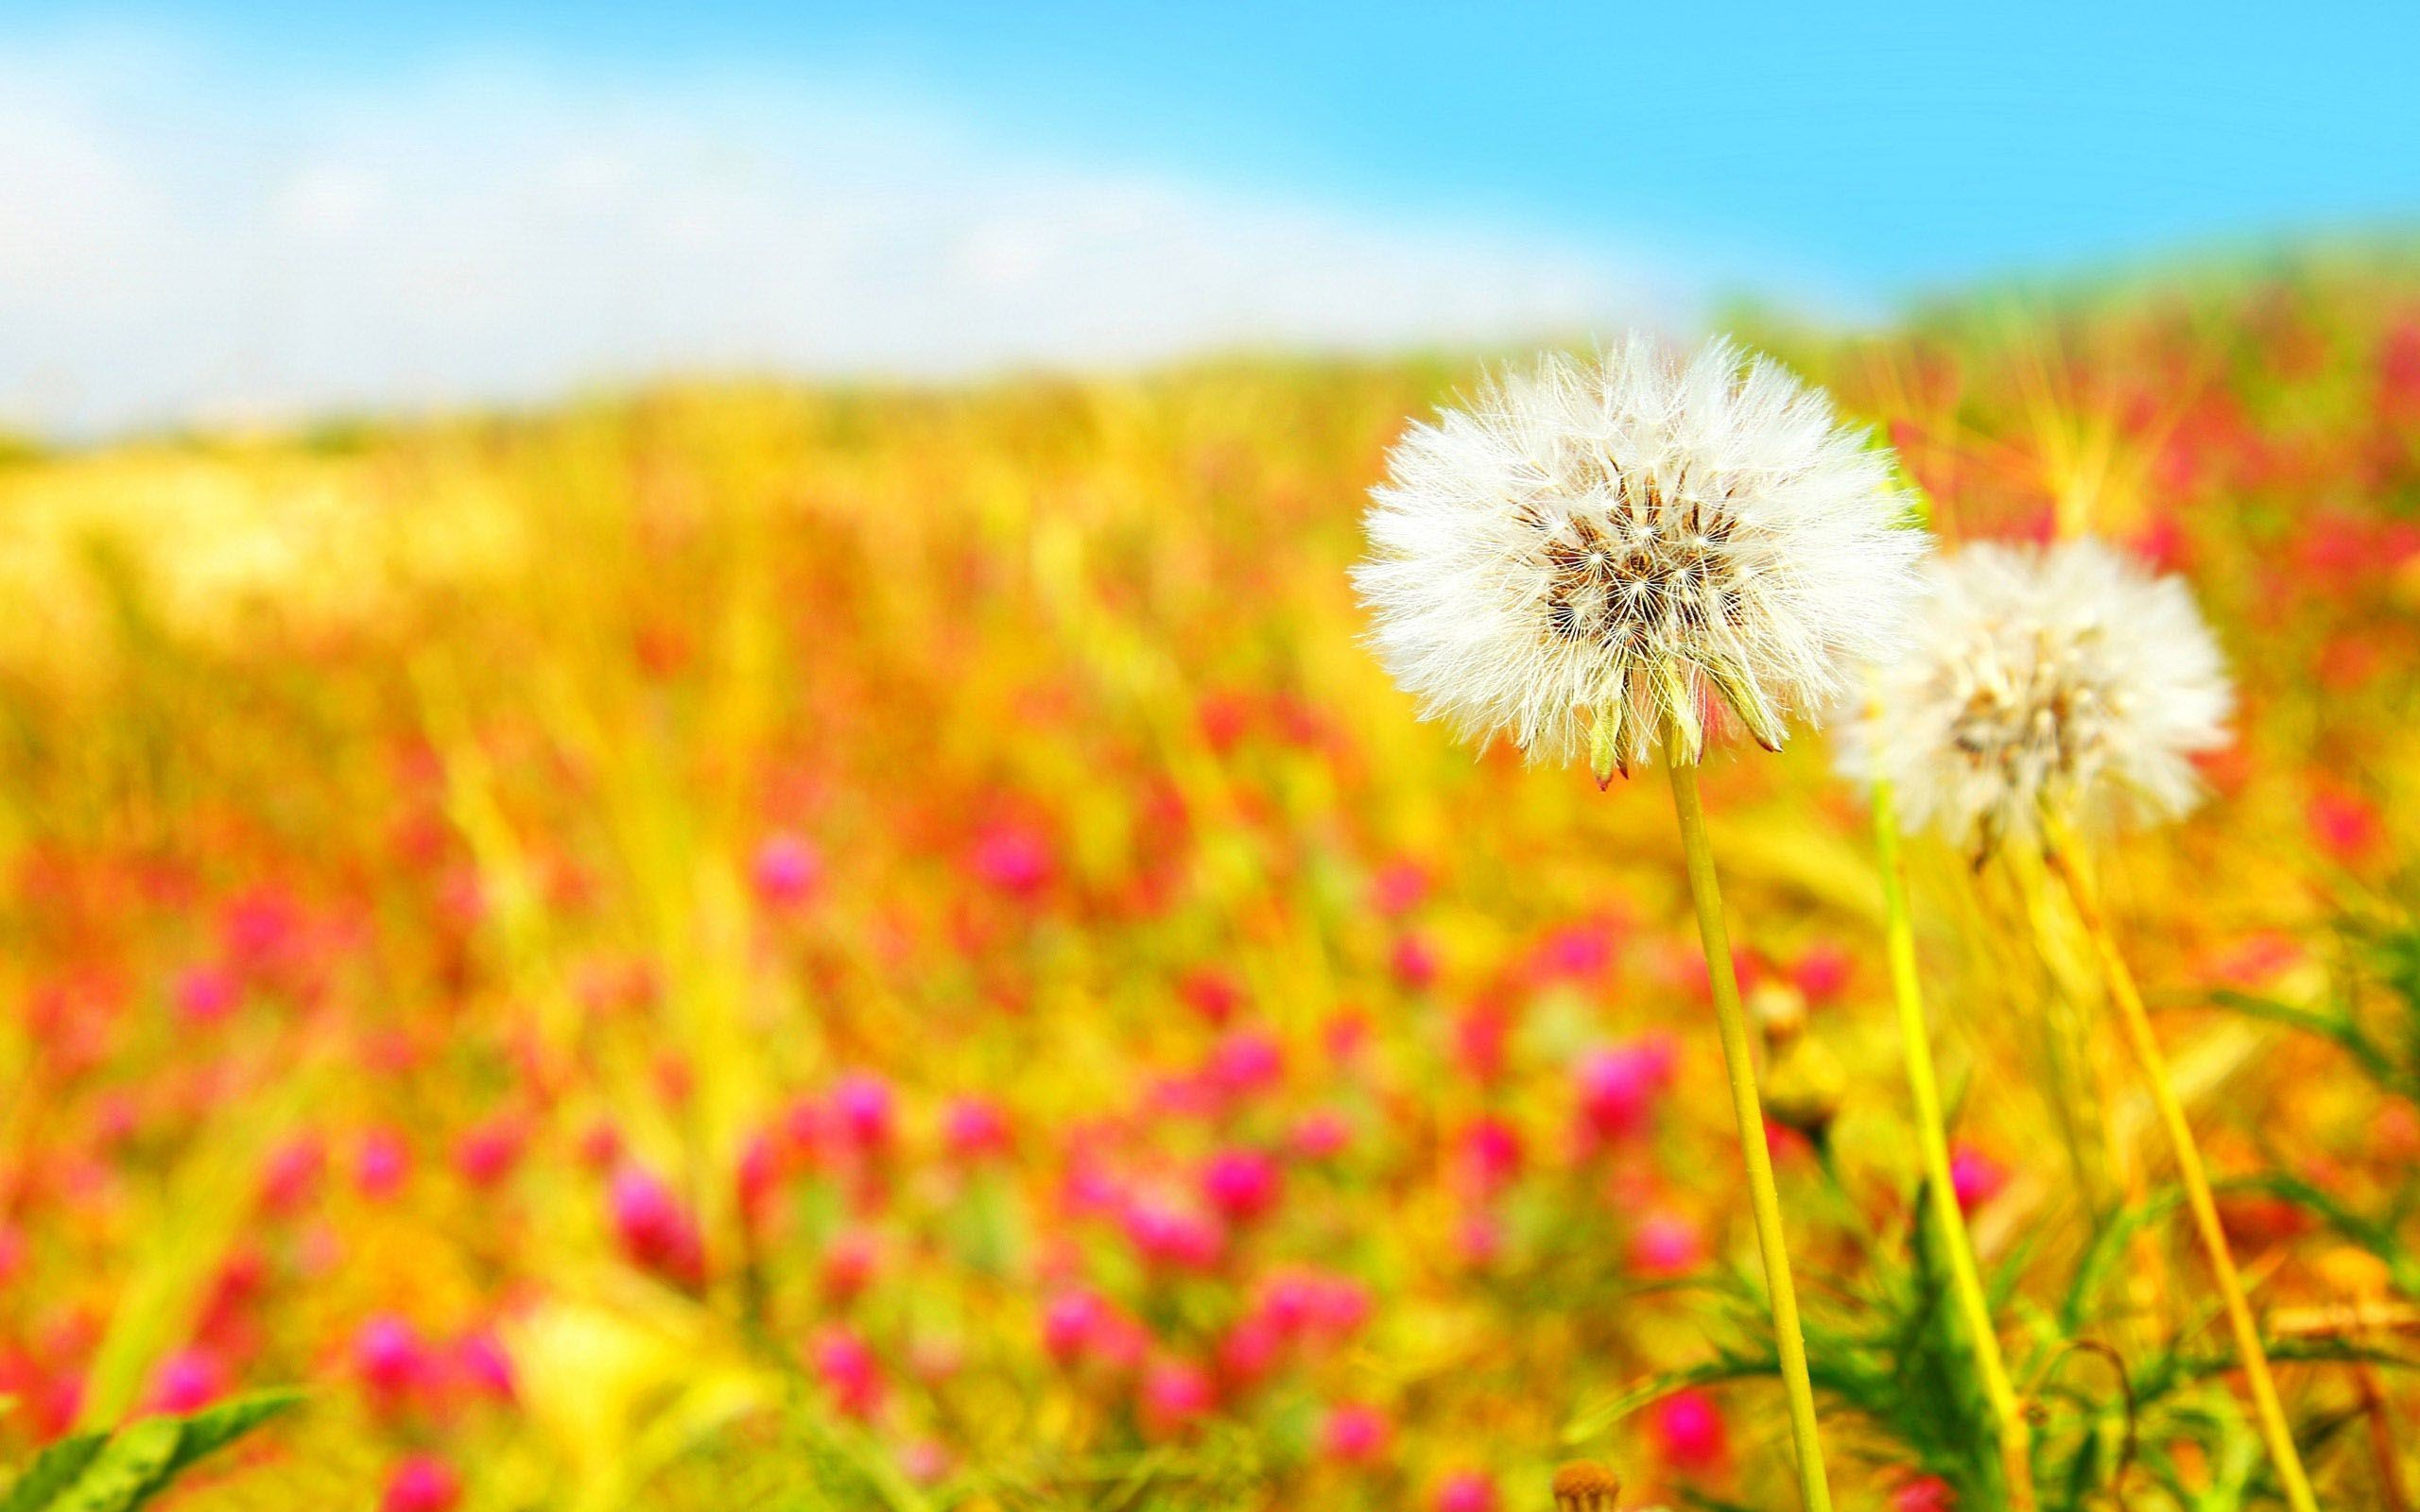 Res: 2560x1600, summer nature backgrounds. summer-nature-wallpaper-0.jpg summer nature  backgrounds